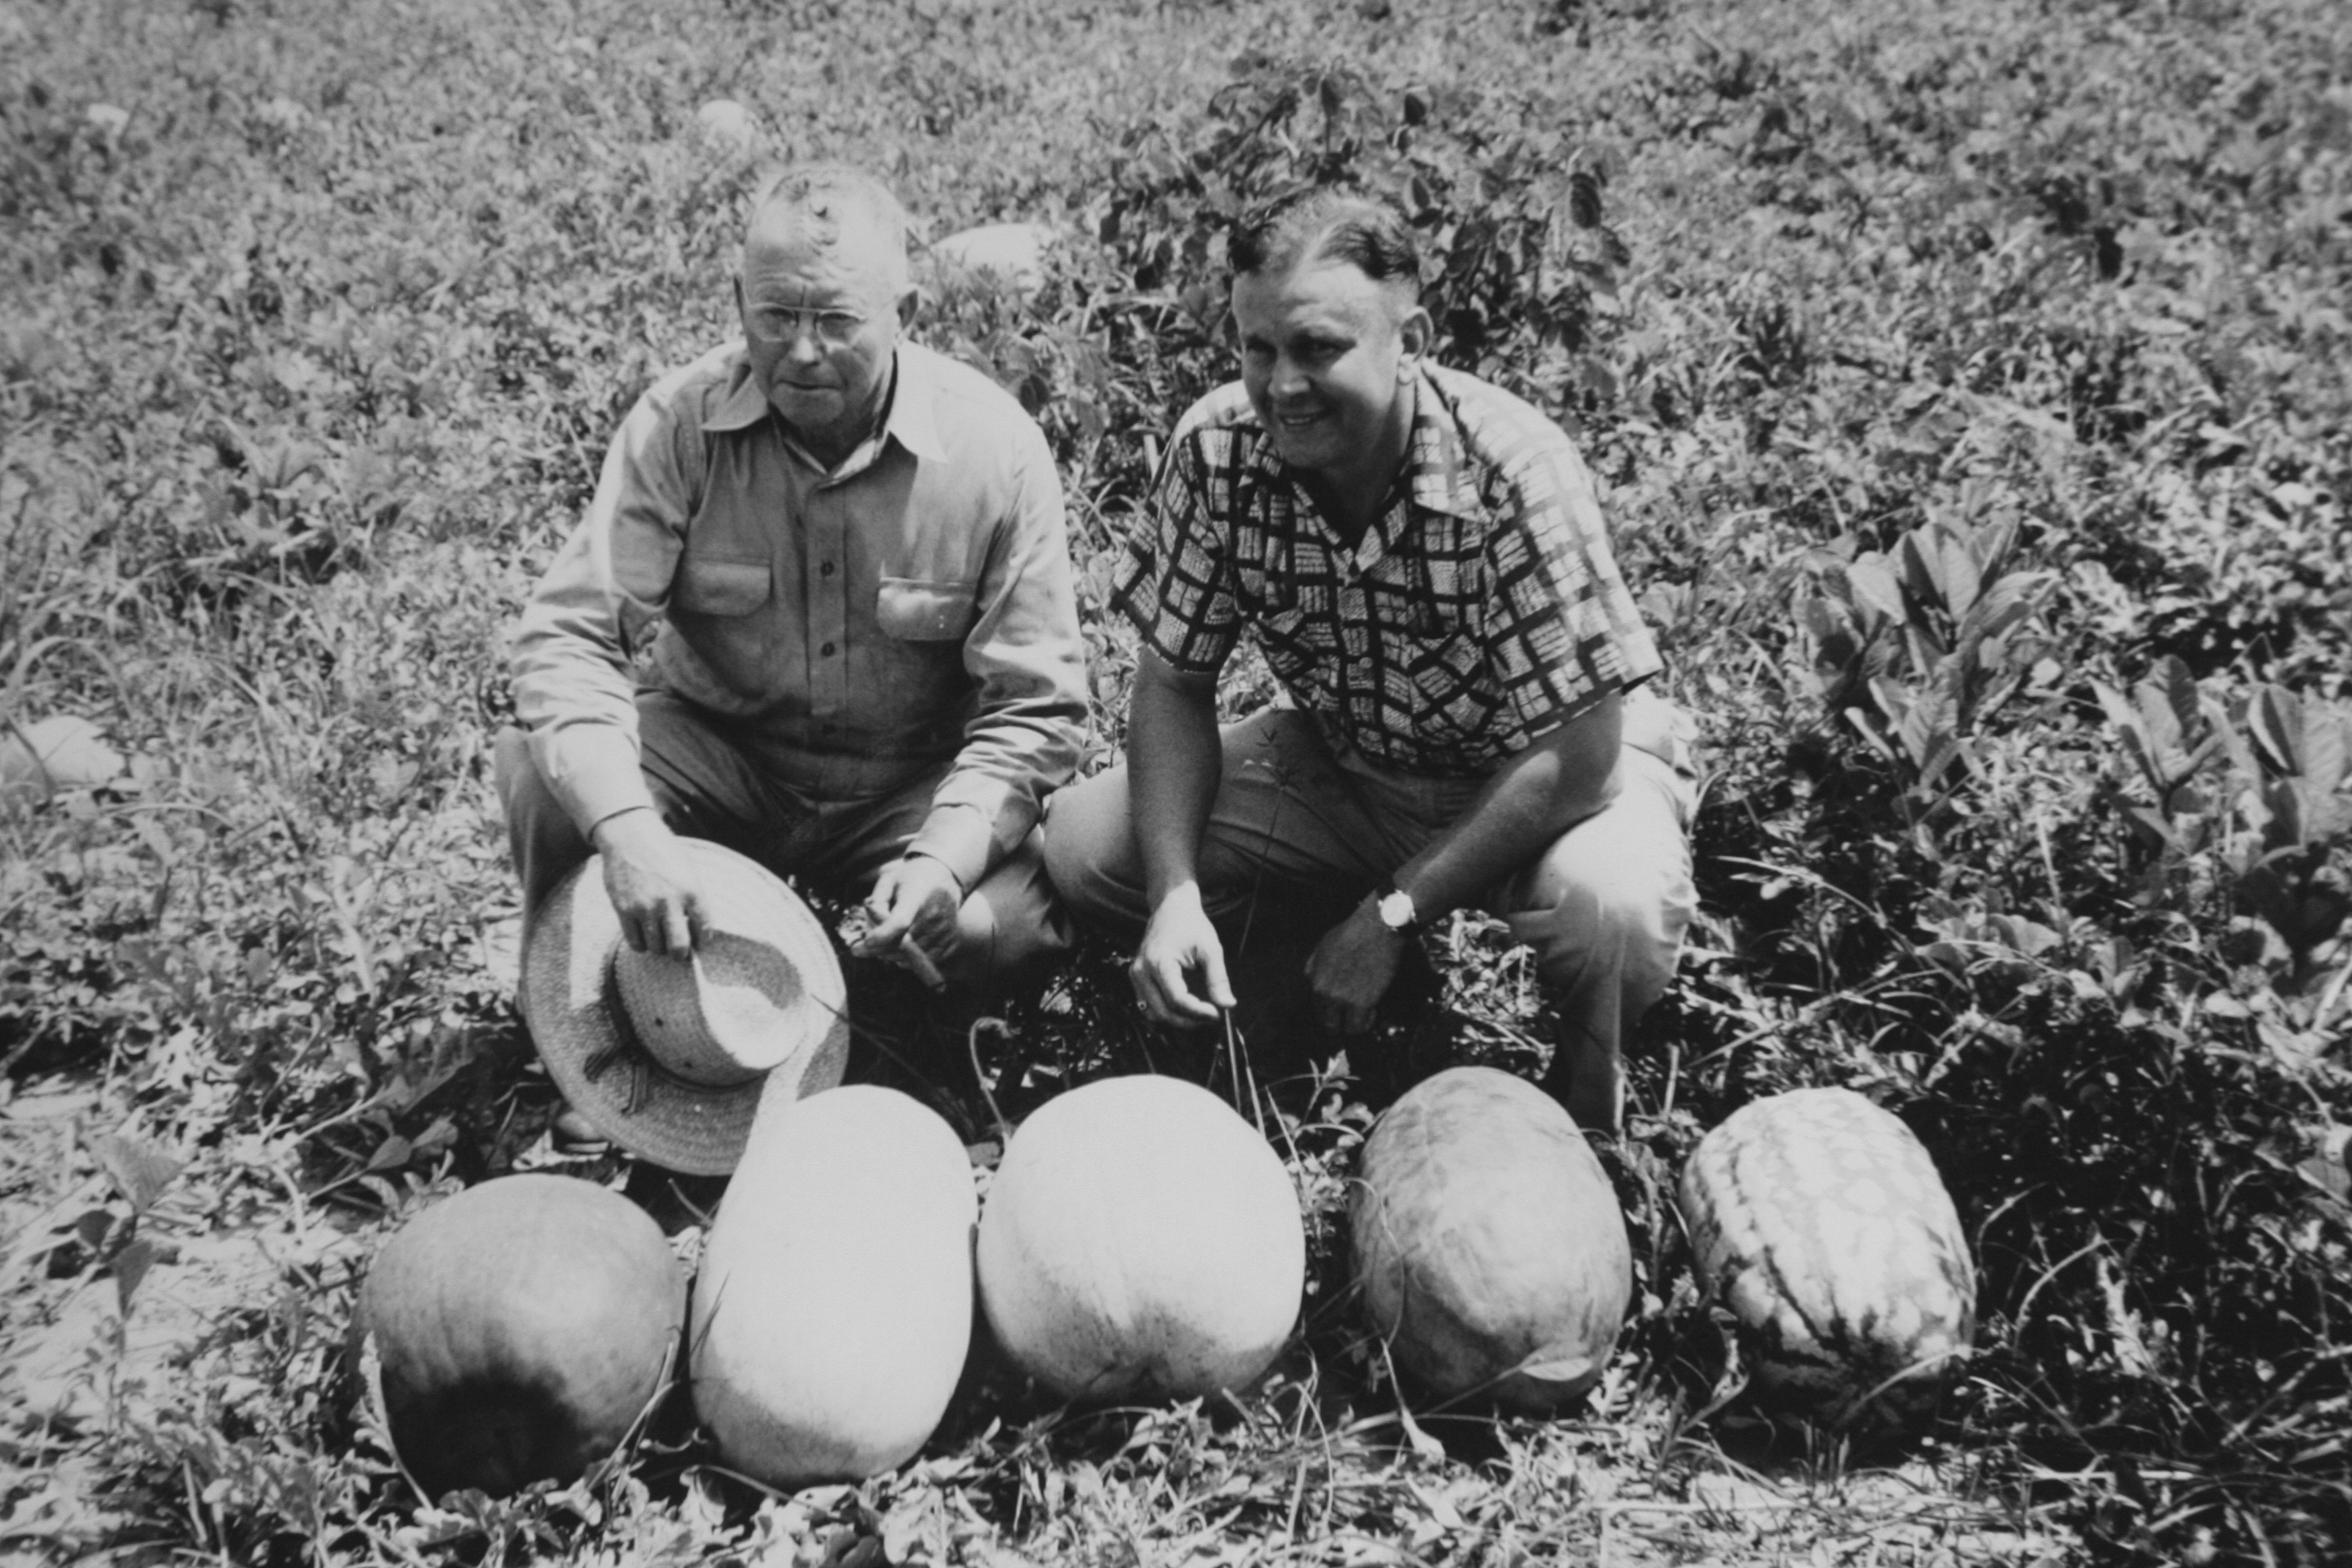 Farmers with prize watermelons. Image from Smathers Archives.